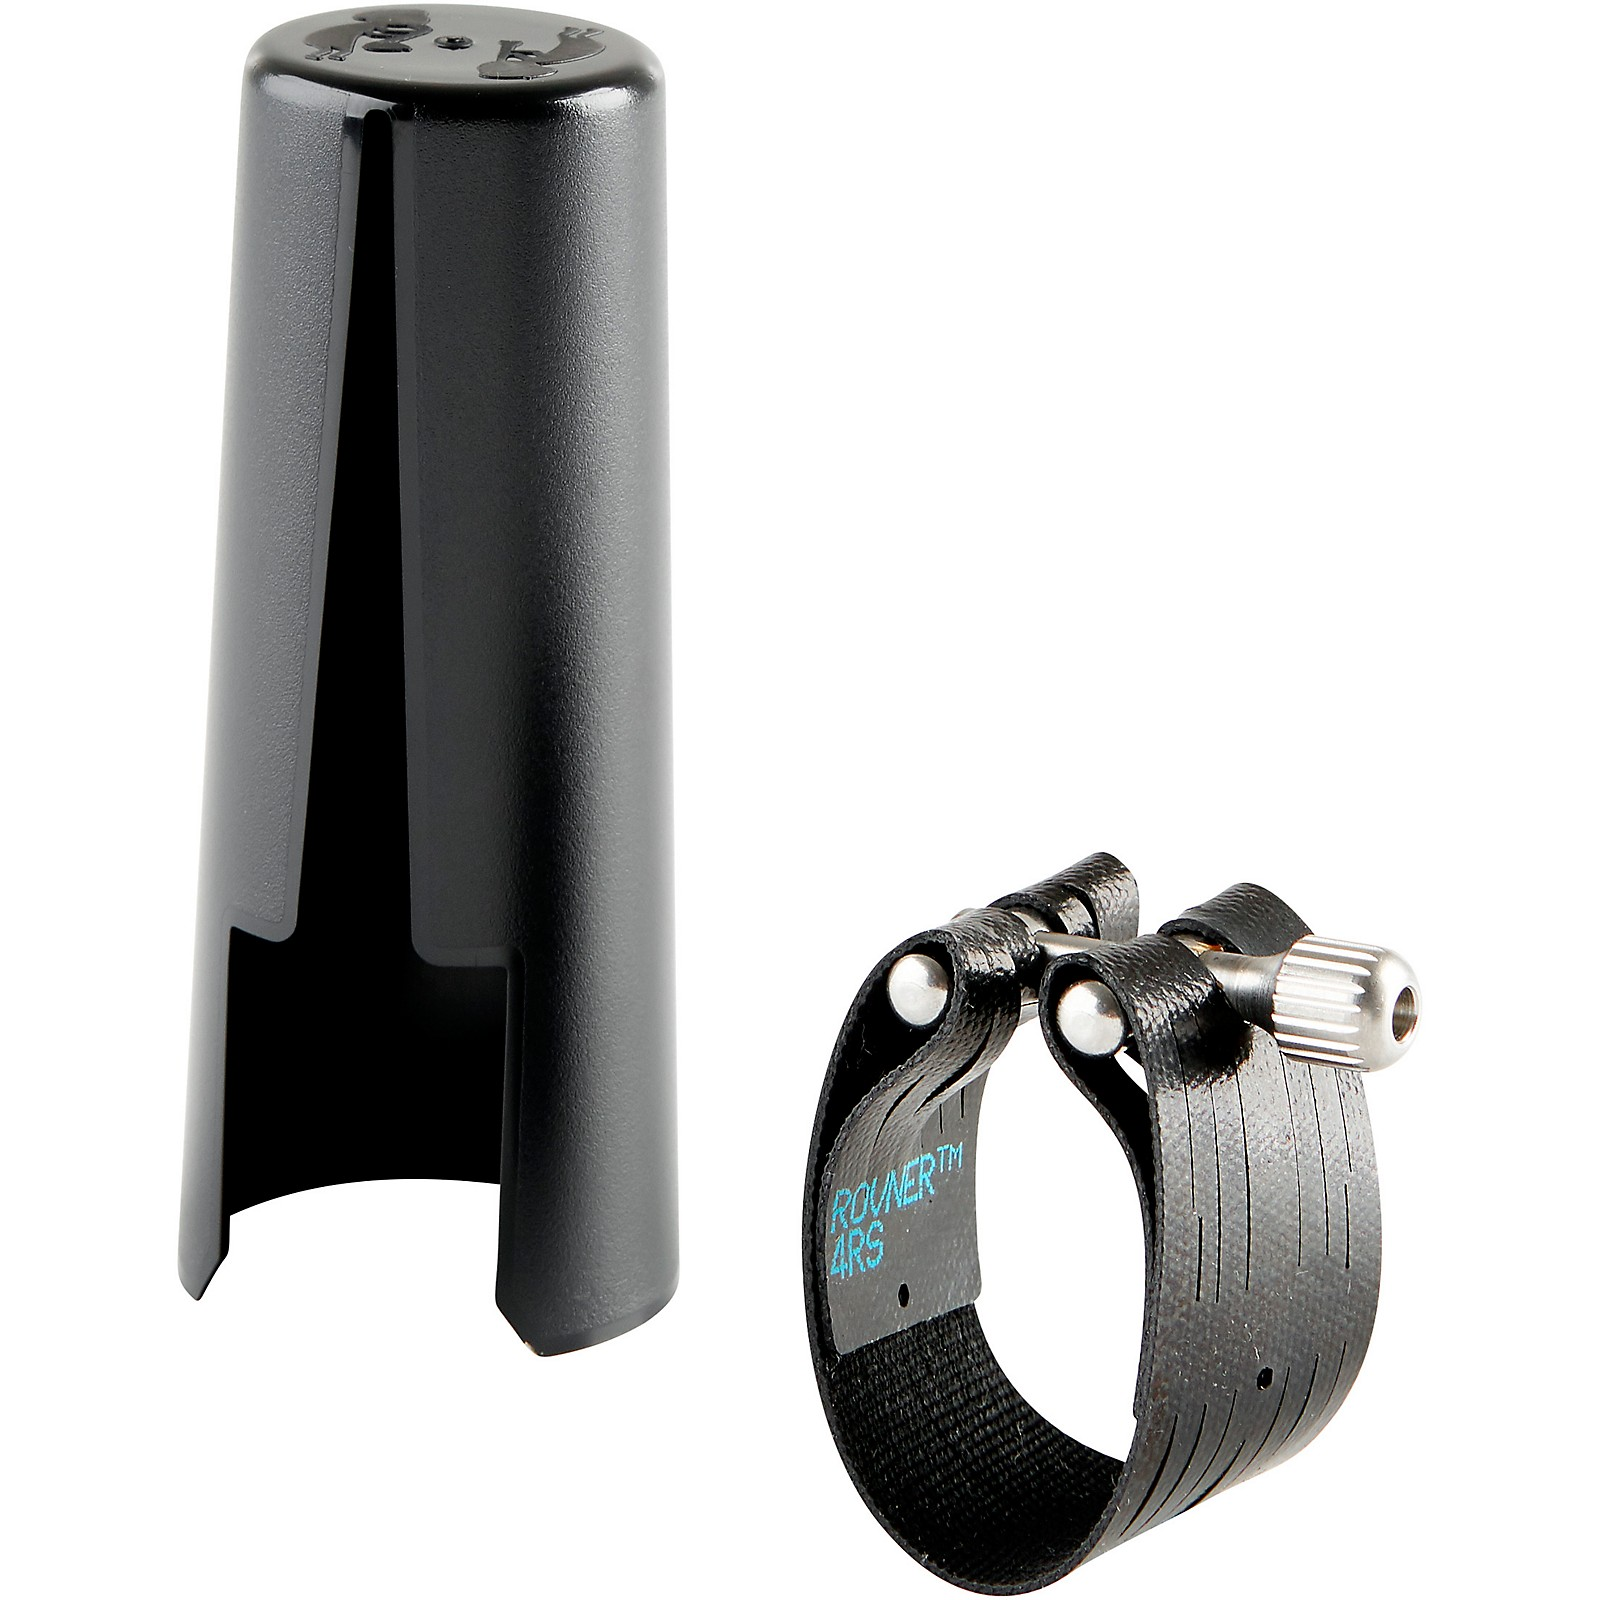 Rovner Dark Contra-Alto Clarinet Ligature and Cap